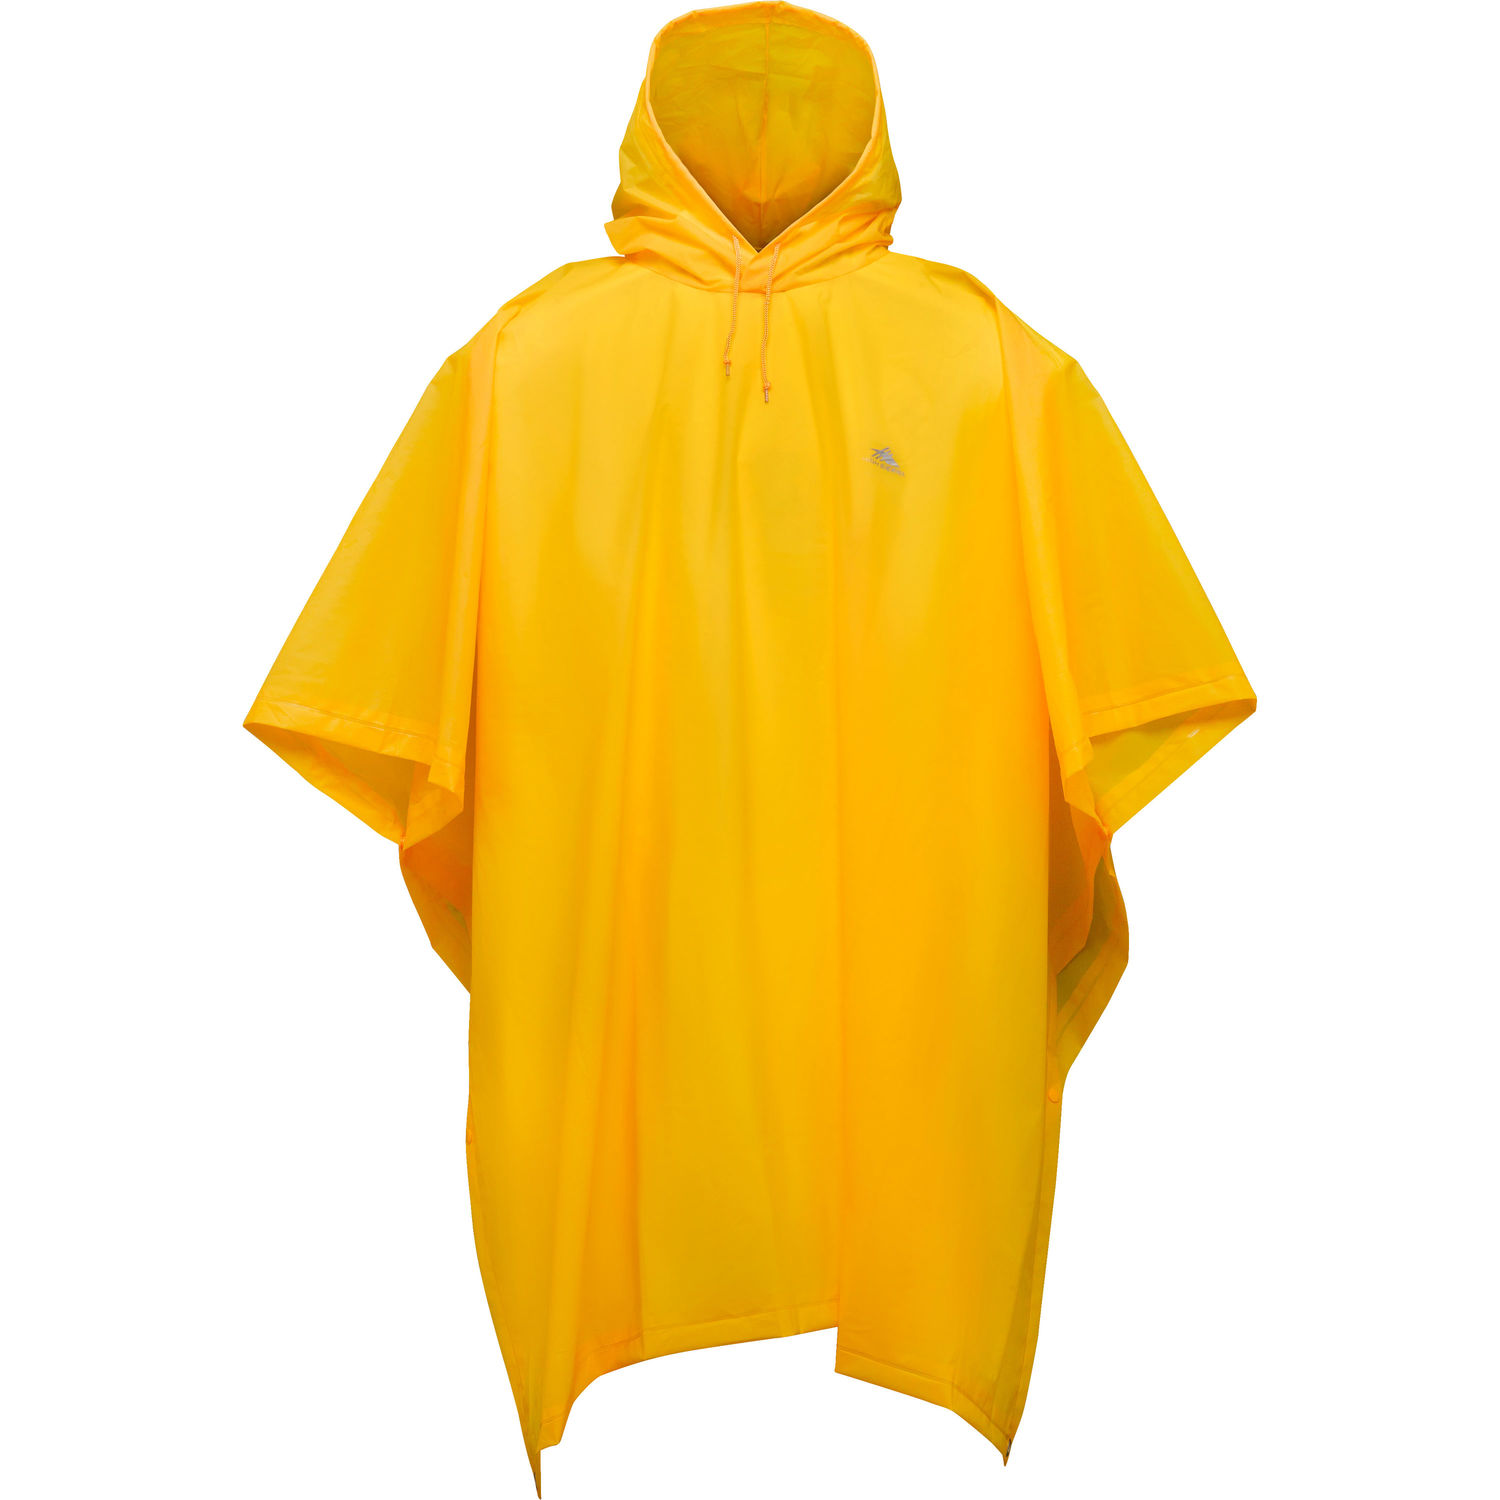 Red Wheel PVC Raincoat RWPR